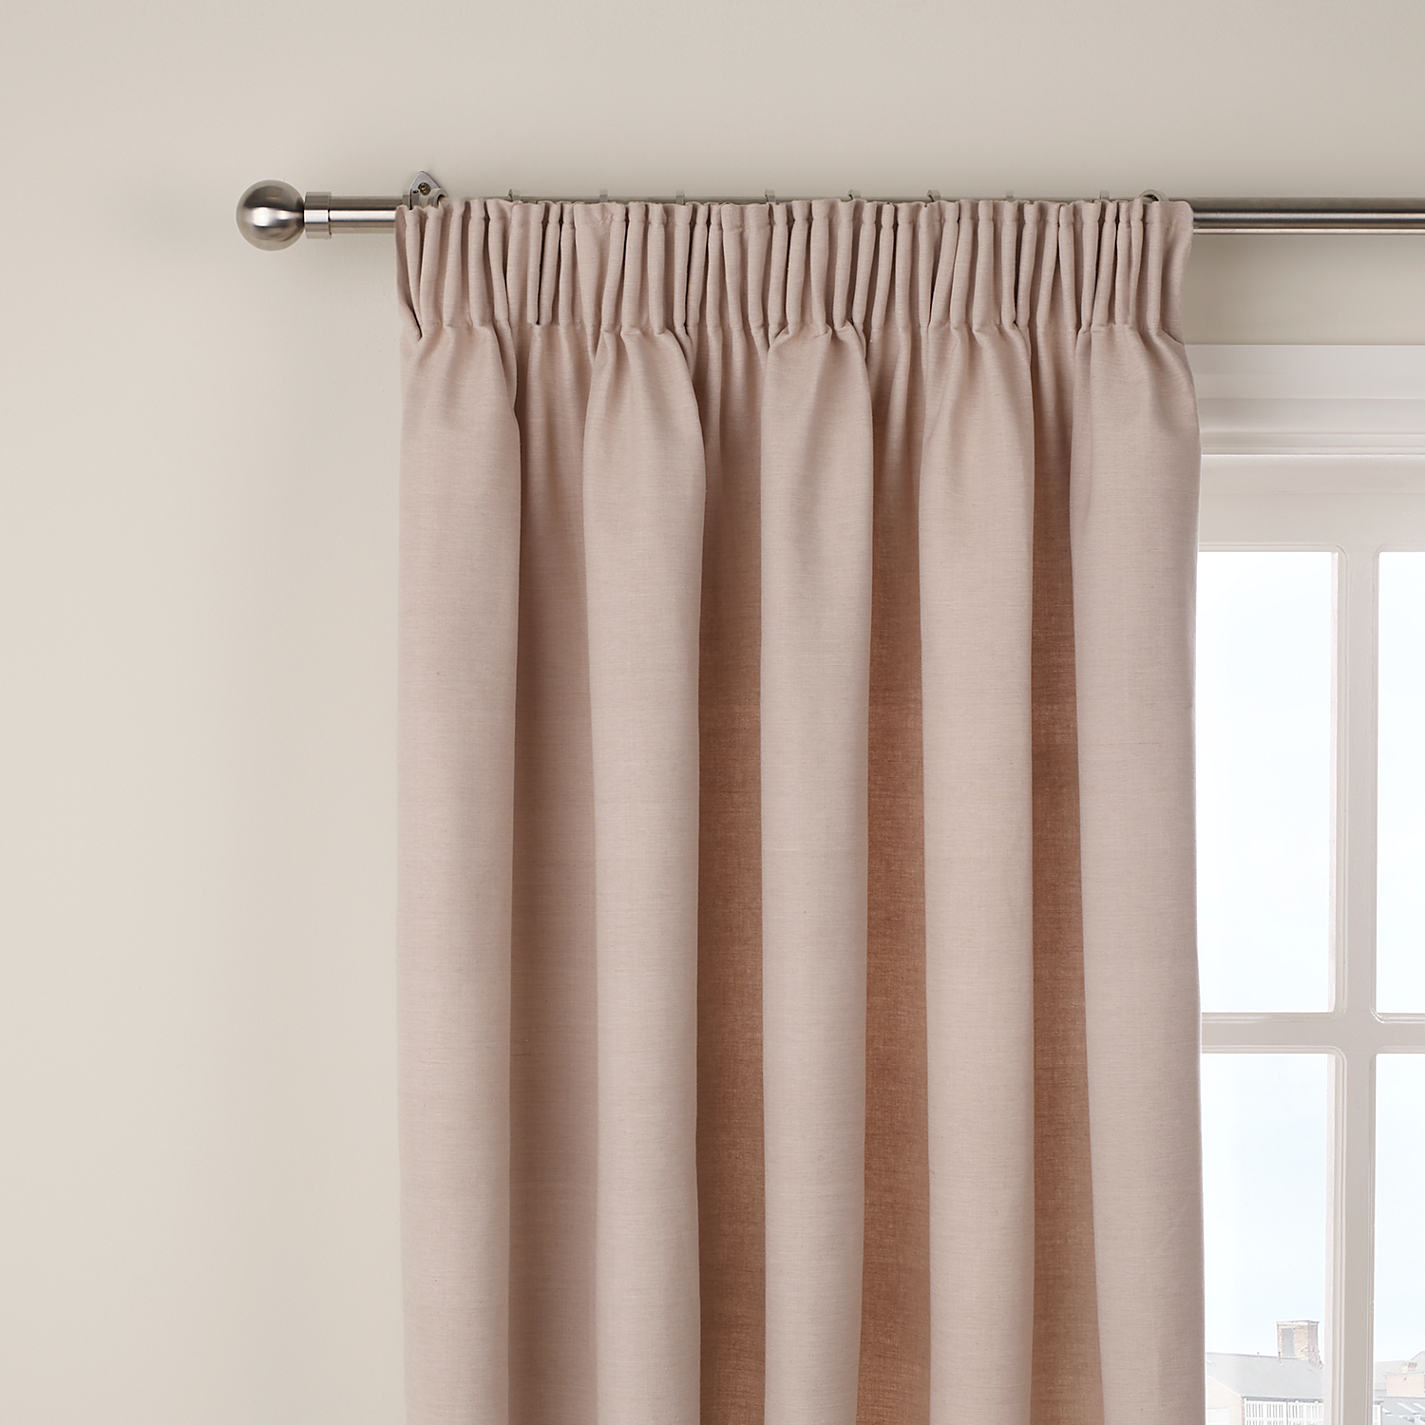 Nice pencil pleat curtains buying guides | egovjournal.com - home design  magazine and vxiwhsz